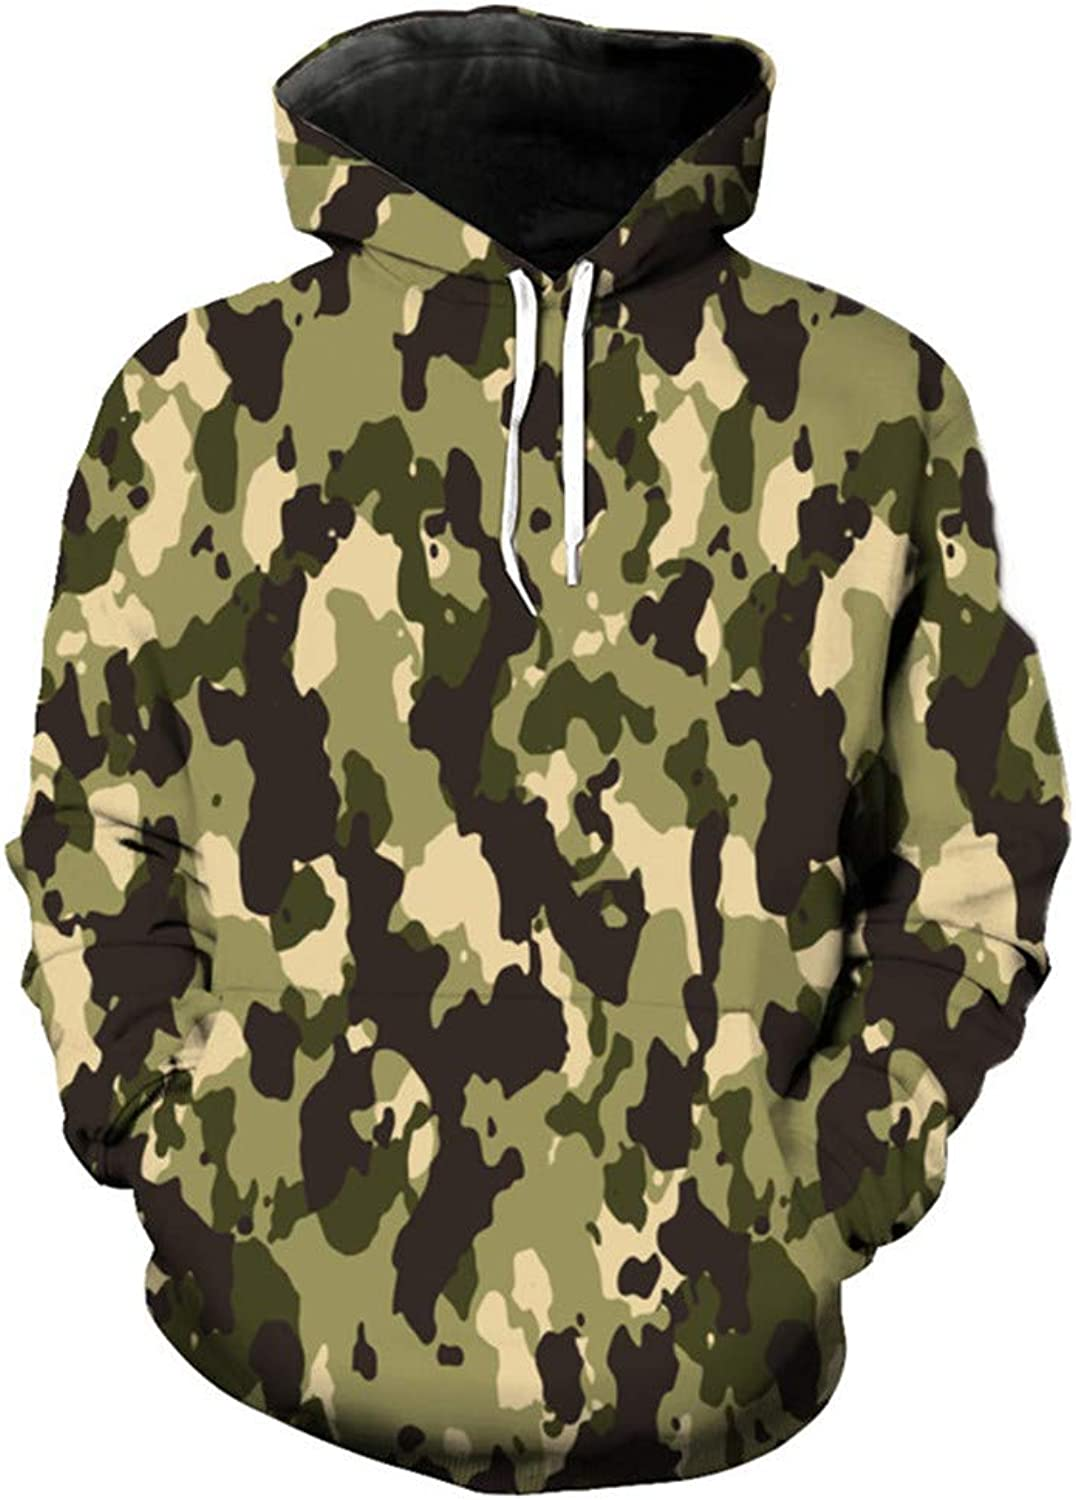 Fashion 3D Camouflage Hooded Hooded Hooded Sweatshirts c222cd